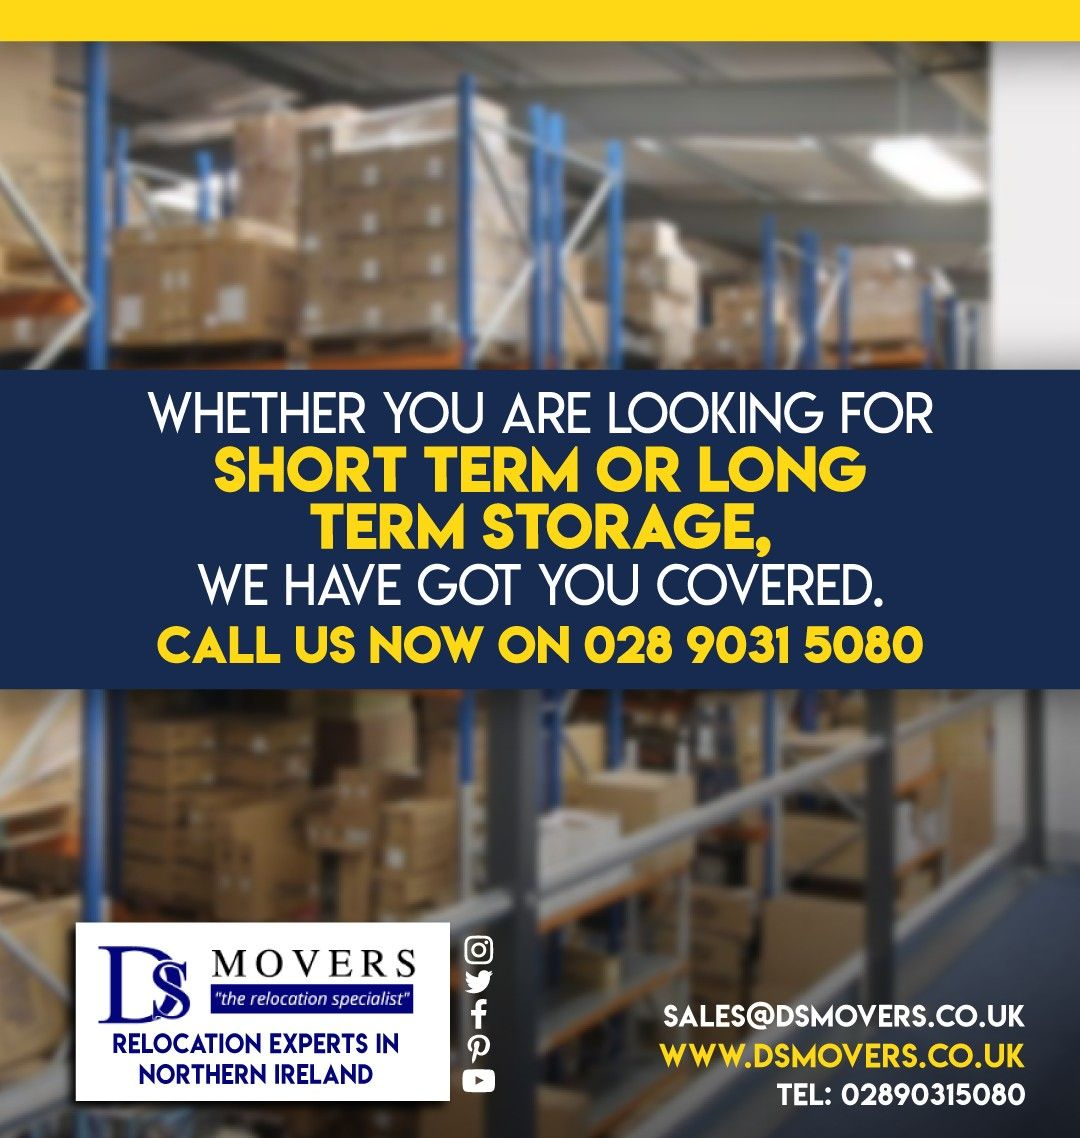 Whether You Are Looking For A Short Term Or A Long Term Storage